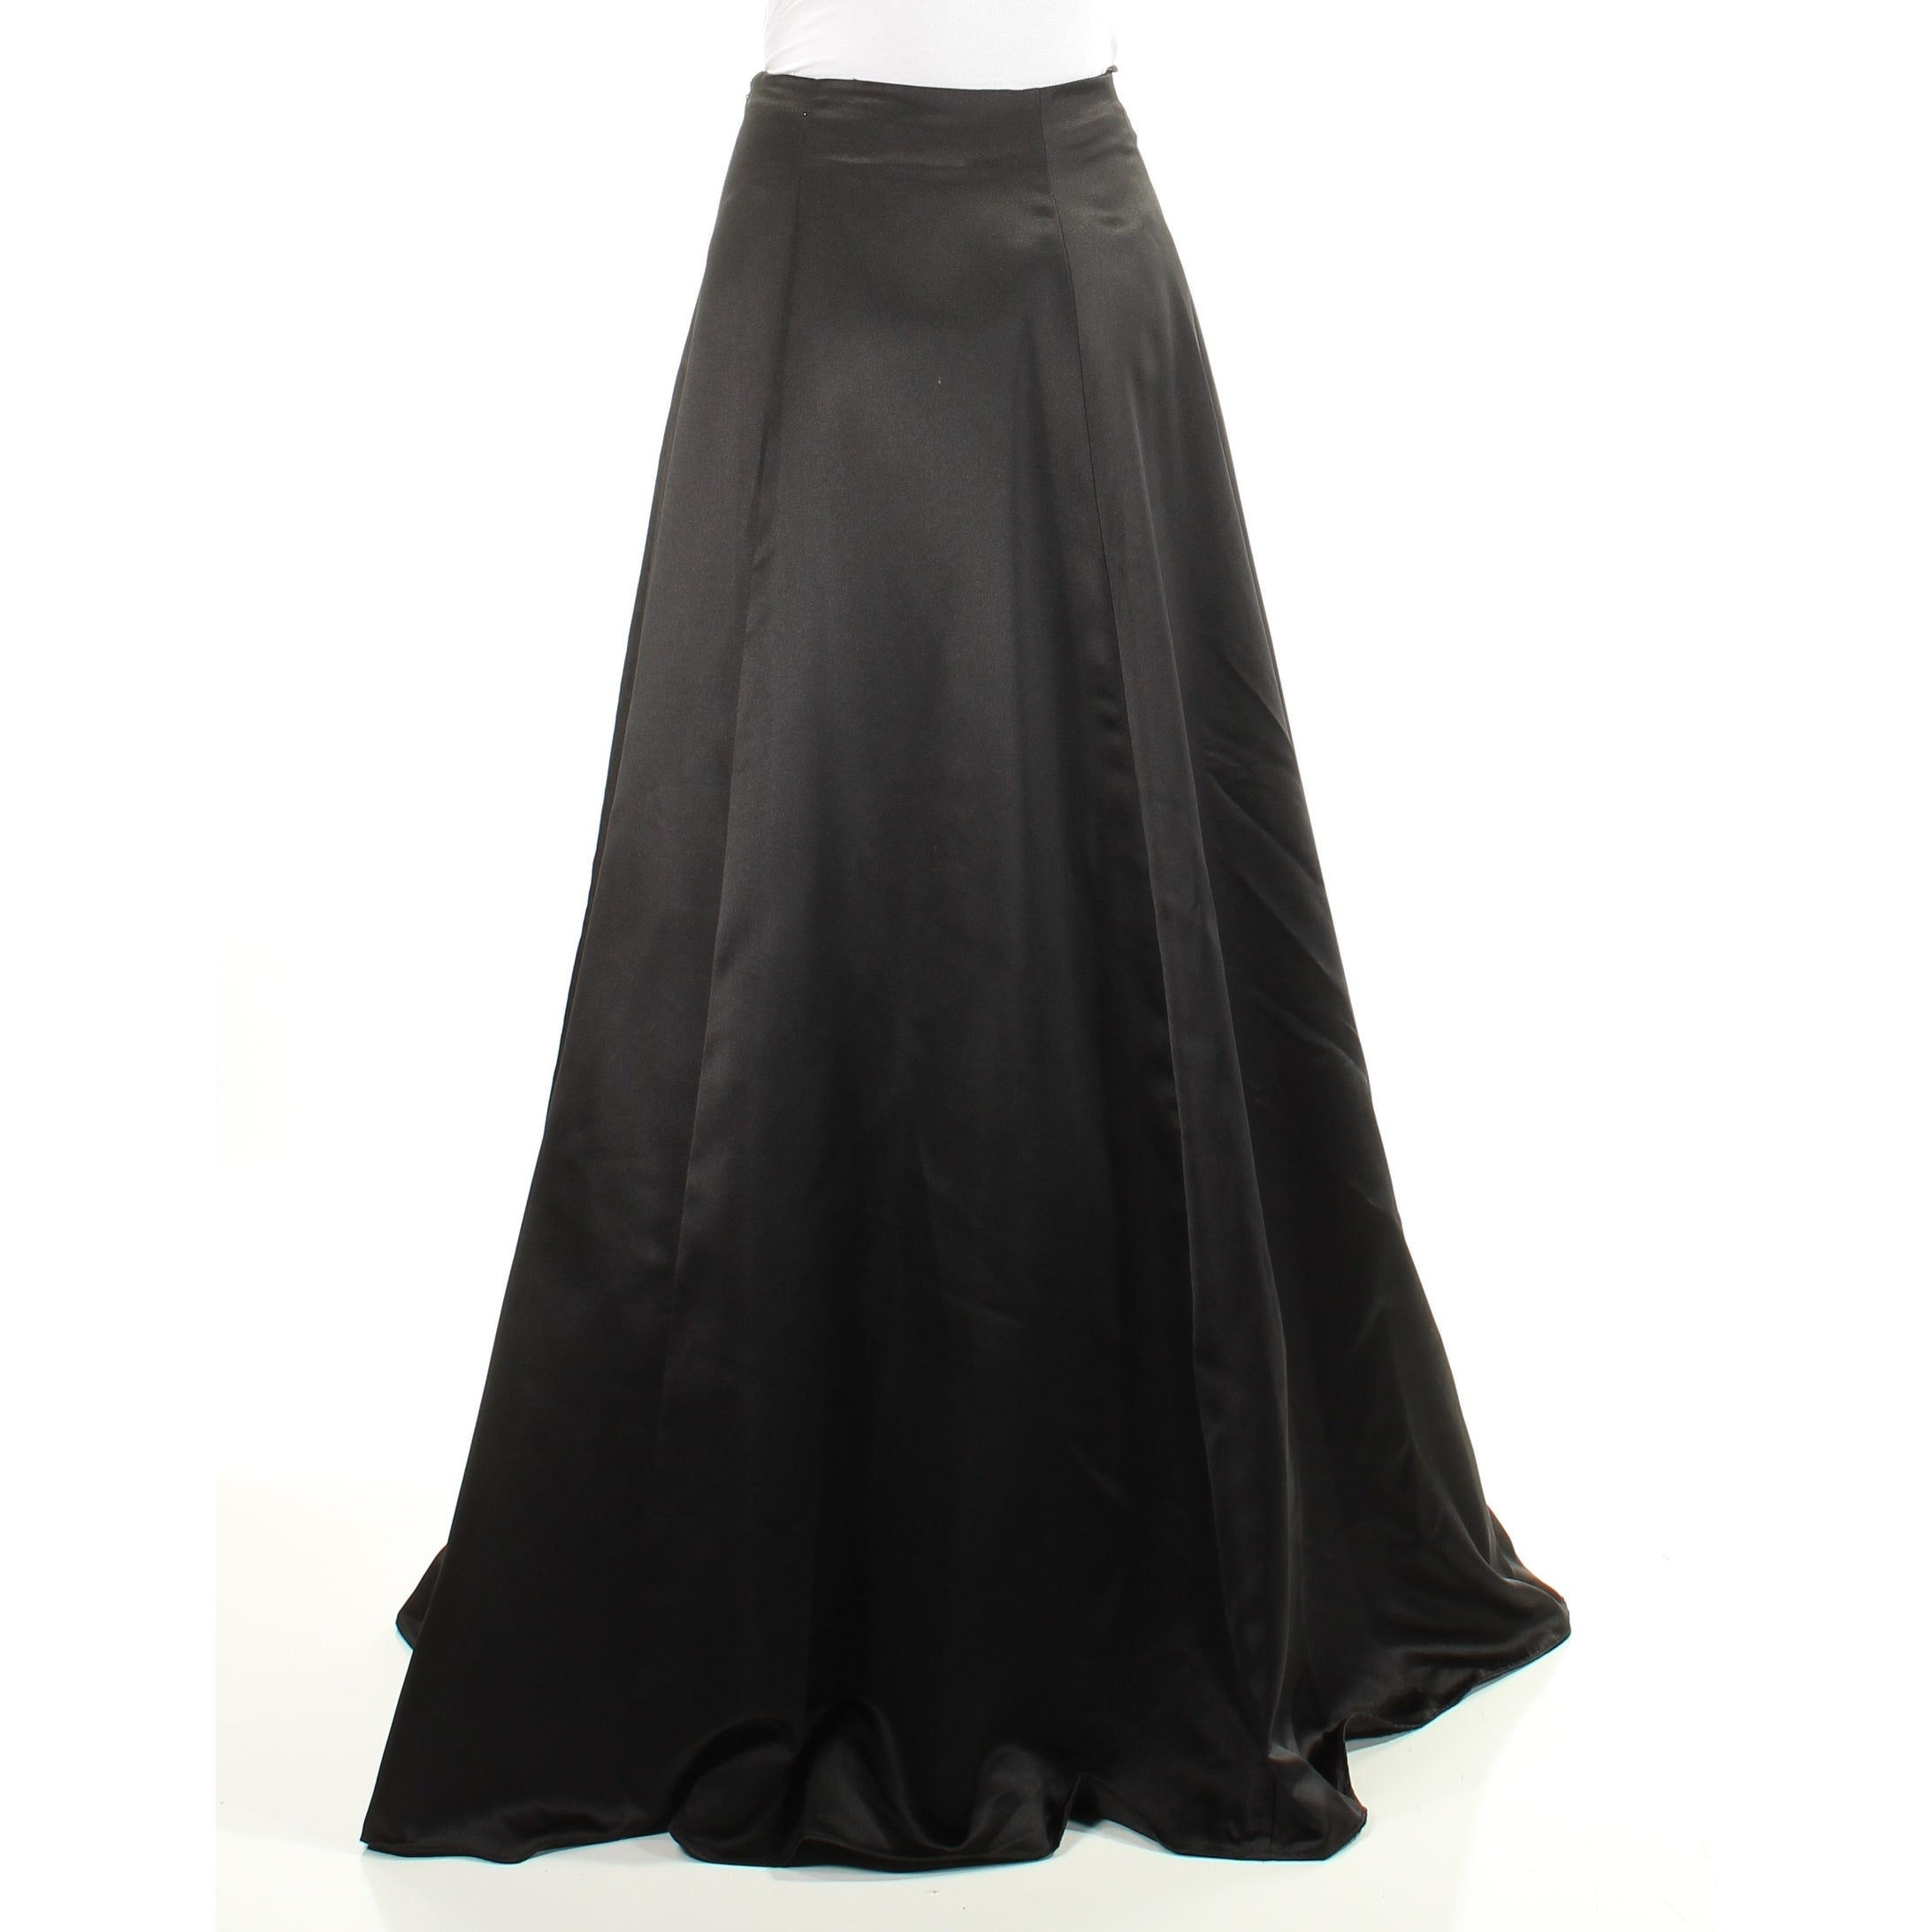 7852ae923 Shop BLONDIE Womens Black Zippered Full Length A-Line Evening Skirt Juniors  Size: 3 - On Sale - Free Shipping On Orders Over $45 - Overstock - 21678667